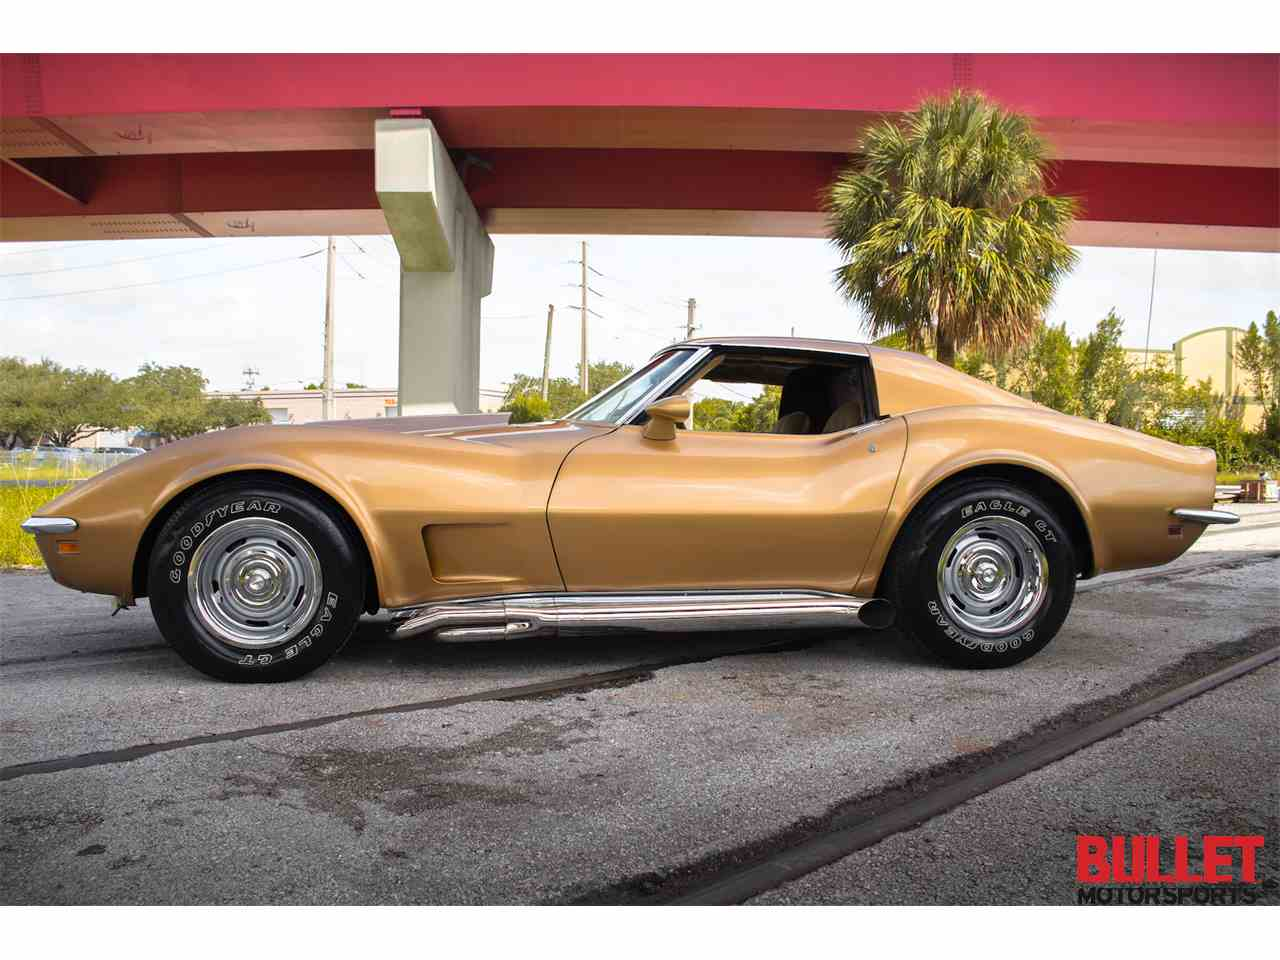 Large Picture of 1969 Chevrolet Corvette located in Florida Offered by Bullet Motorsports Inc - LS2F